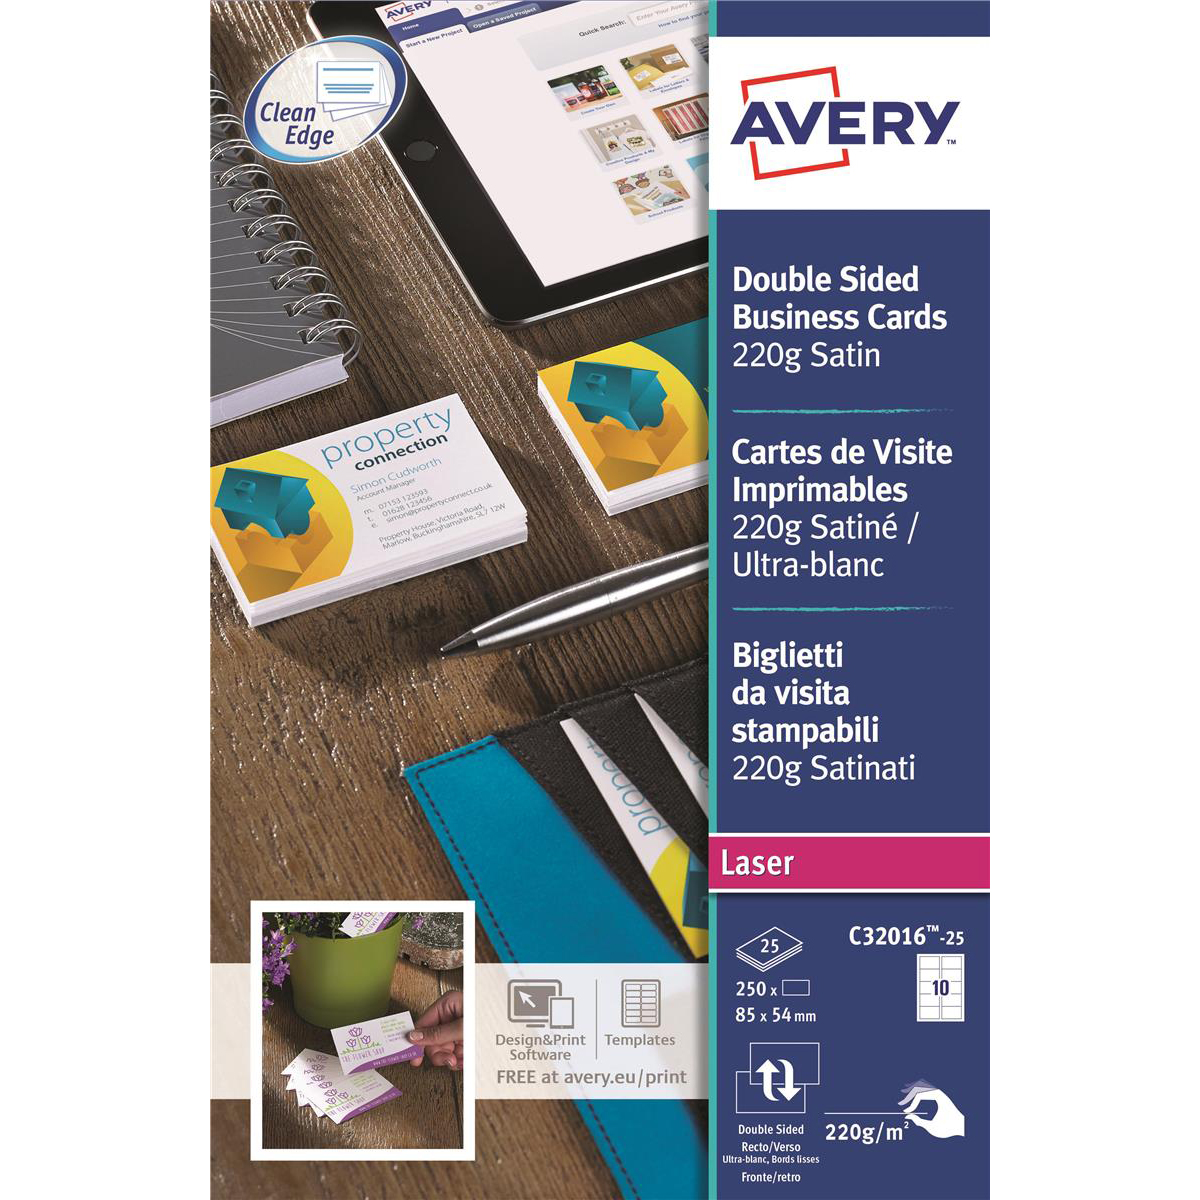 Business Cards Avery Quick and Clean Business Cards Laser 220gsm 10 per Sheet Satin Colour Ref C32016-25 250 Cards